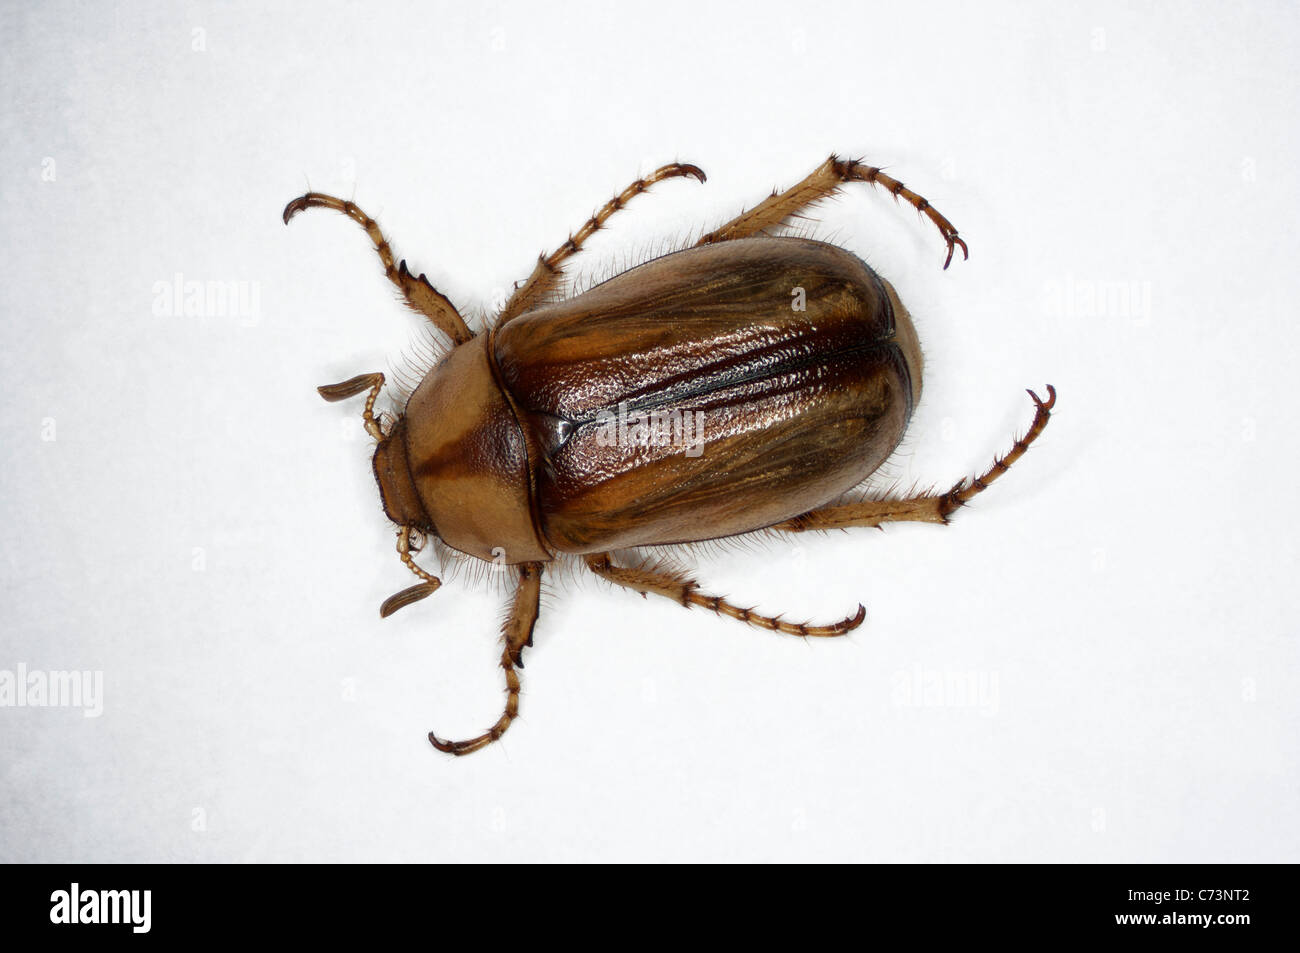 Summer Chafer, European June Beetle (Amphimallon solstitiale). Imago, studio picture against a white background. Stock Photo